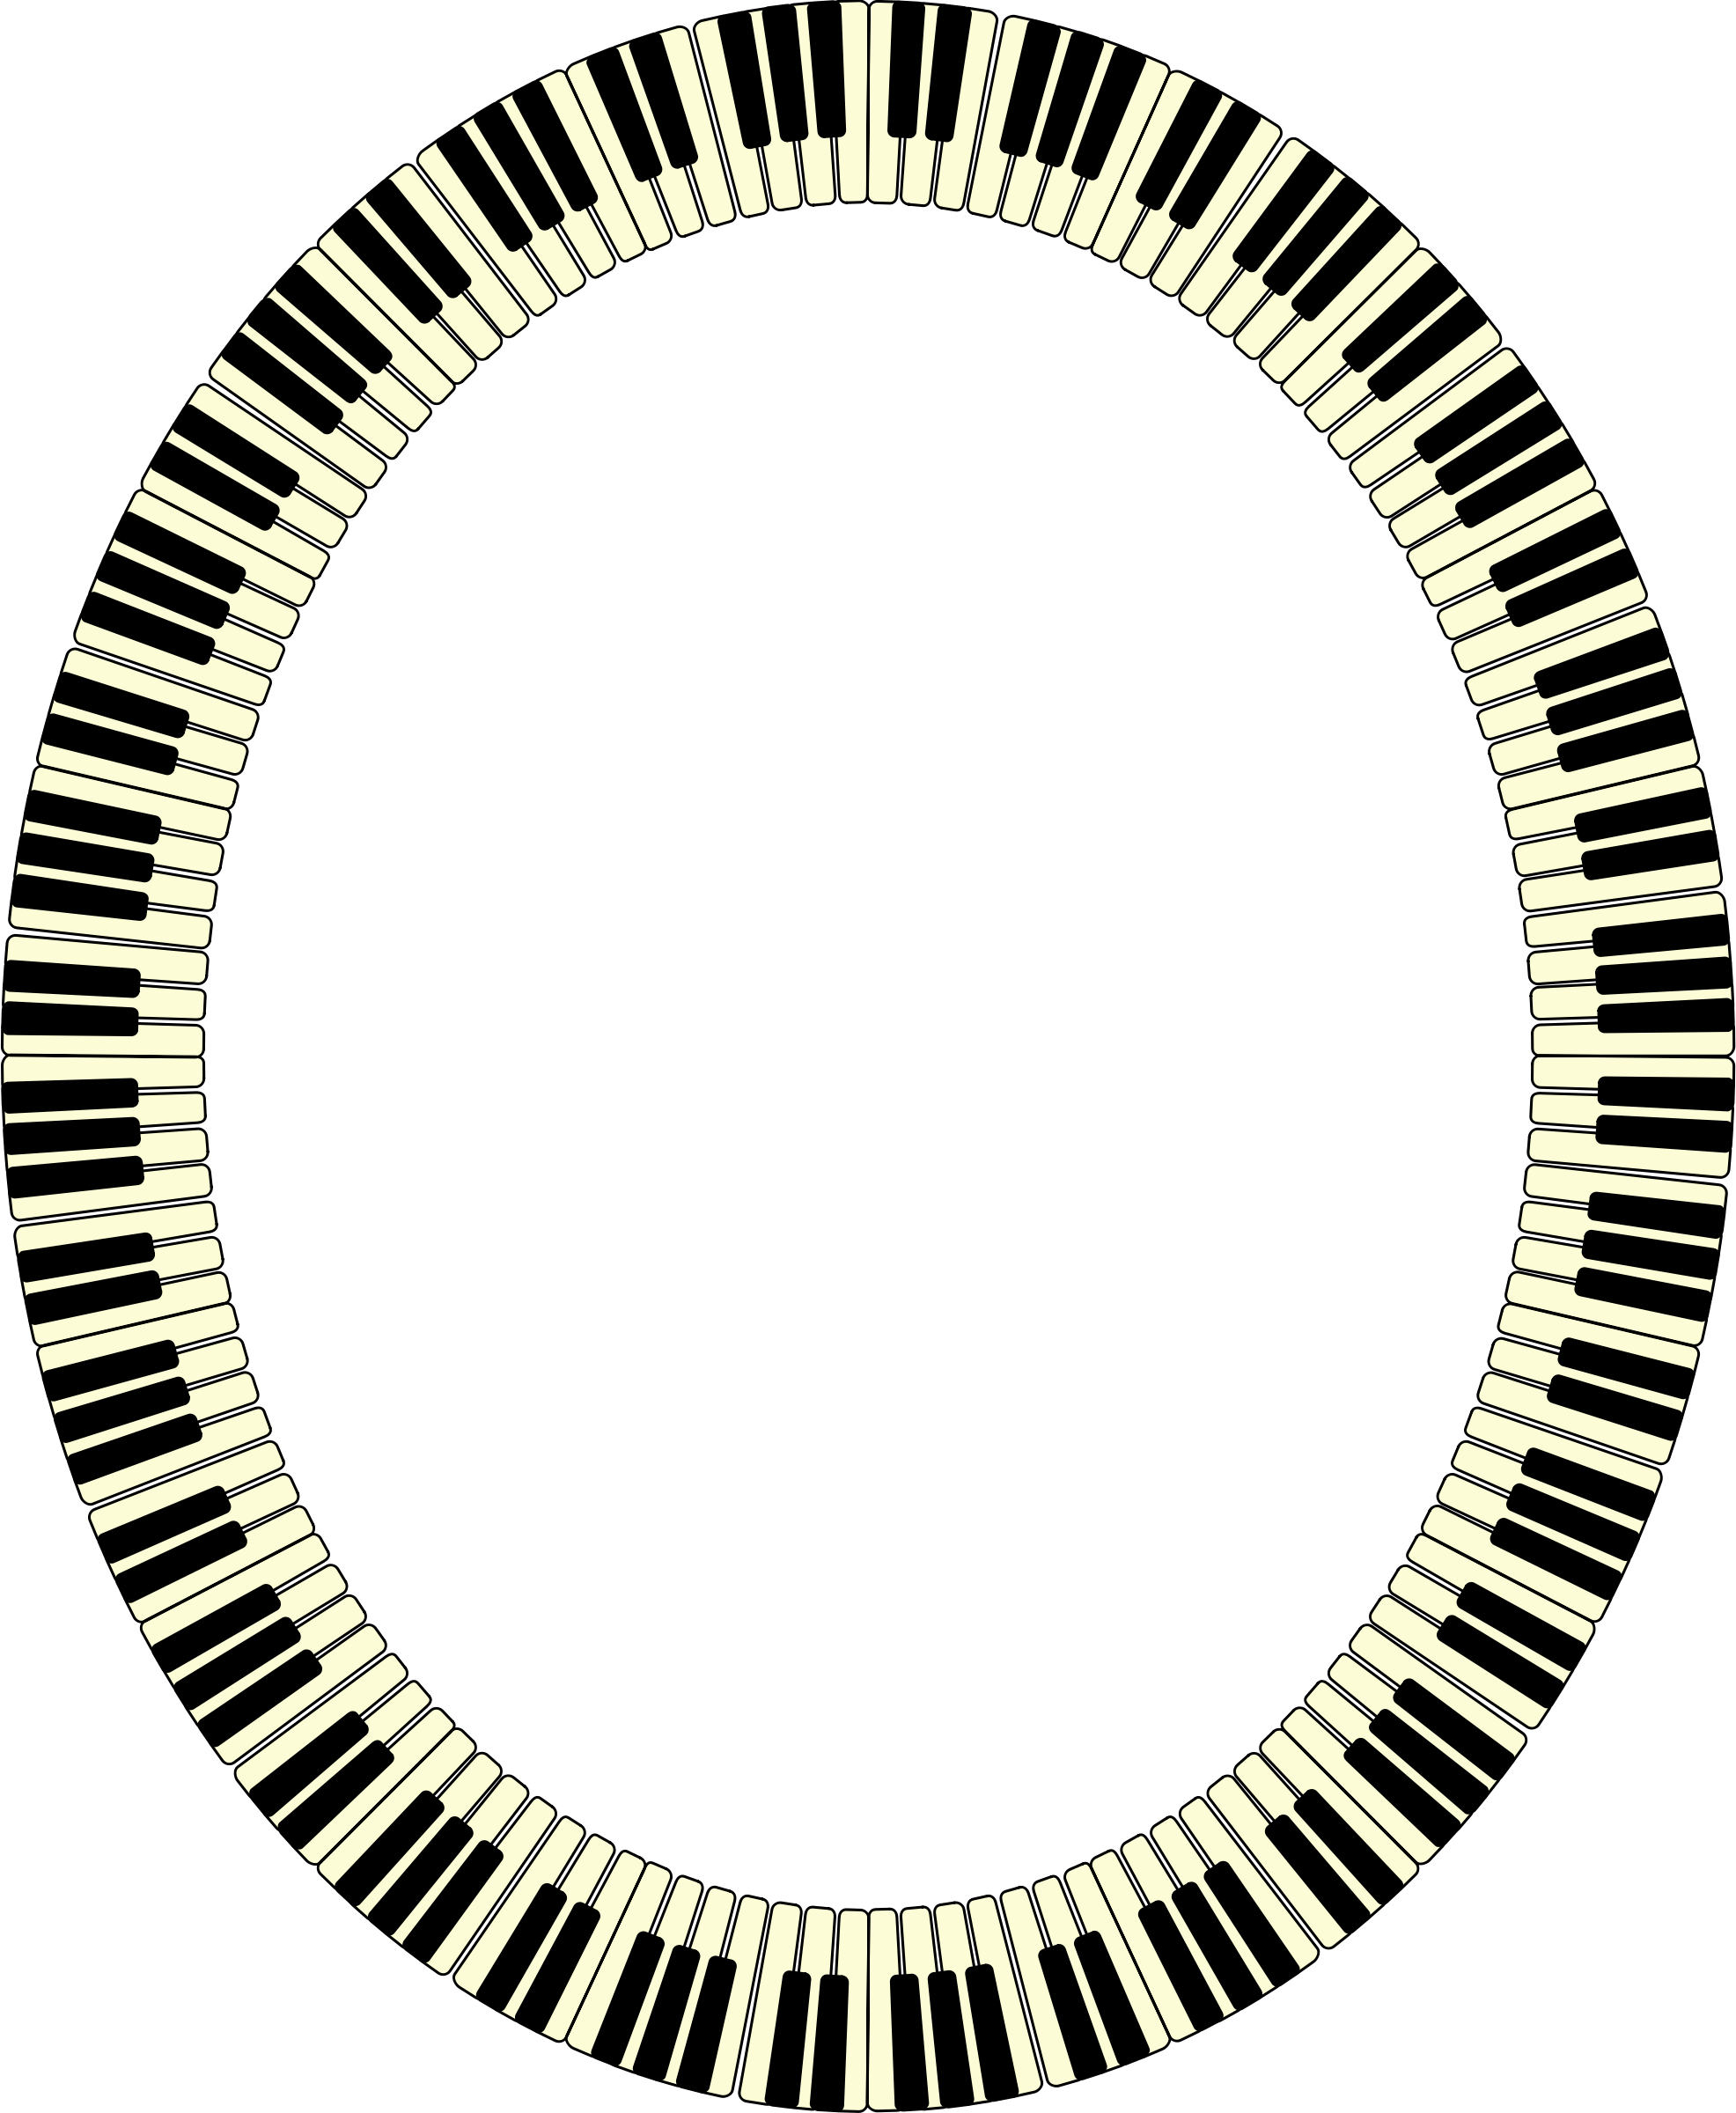 Piano clipart frame. Keys ellipse big image